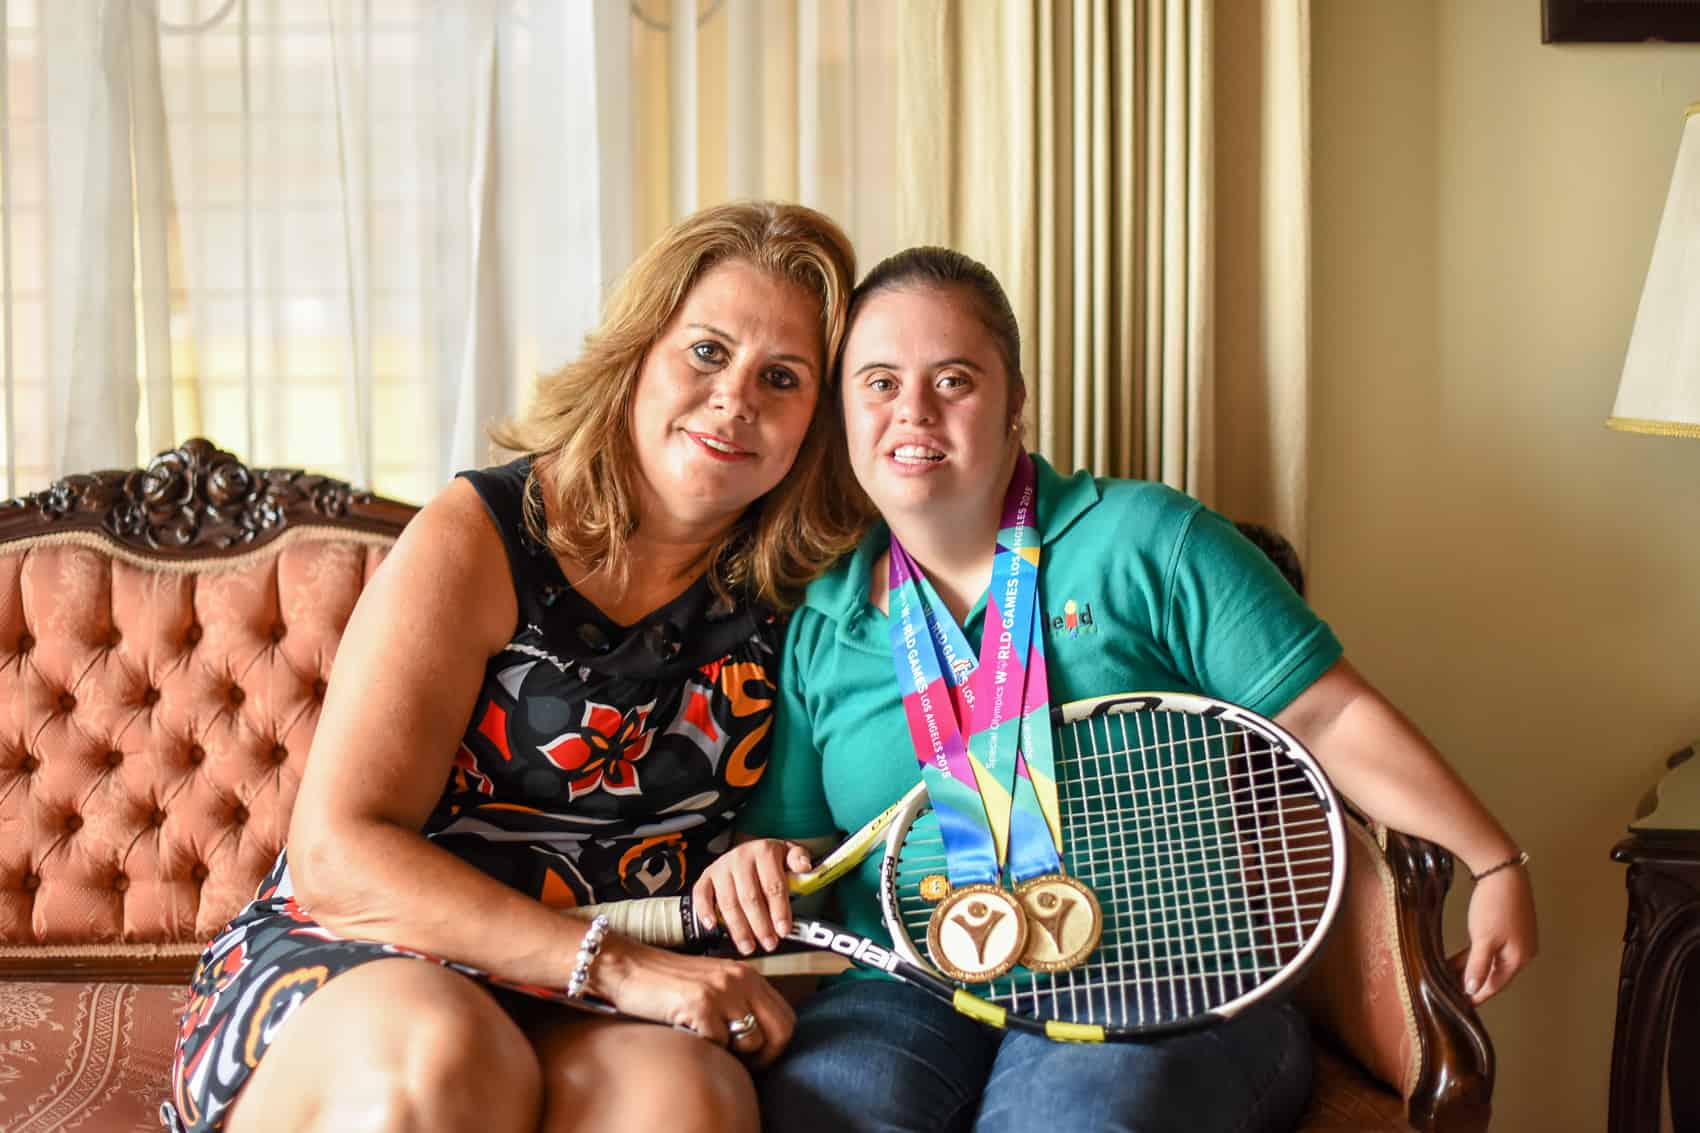 Jeannette Gamboa said she's unable to put into words how she felt when her daughter Catalina Cervantes won gold medals at the Special Olympics in Los Angeles two weeks ago, August 13, 2015.